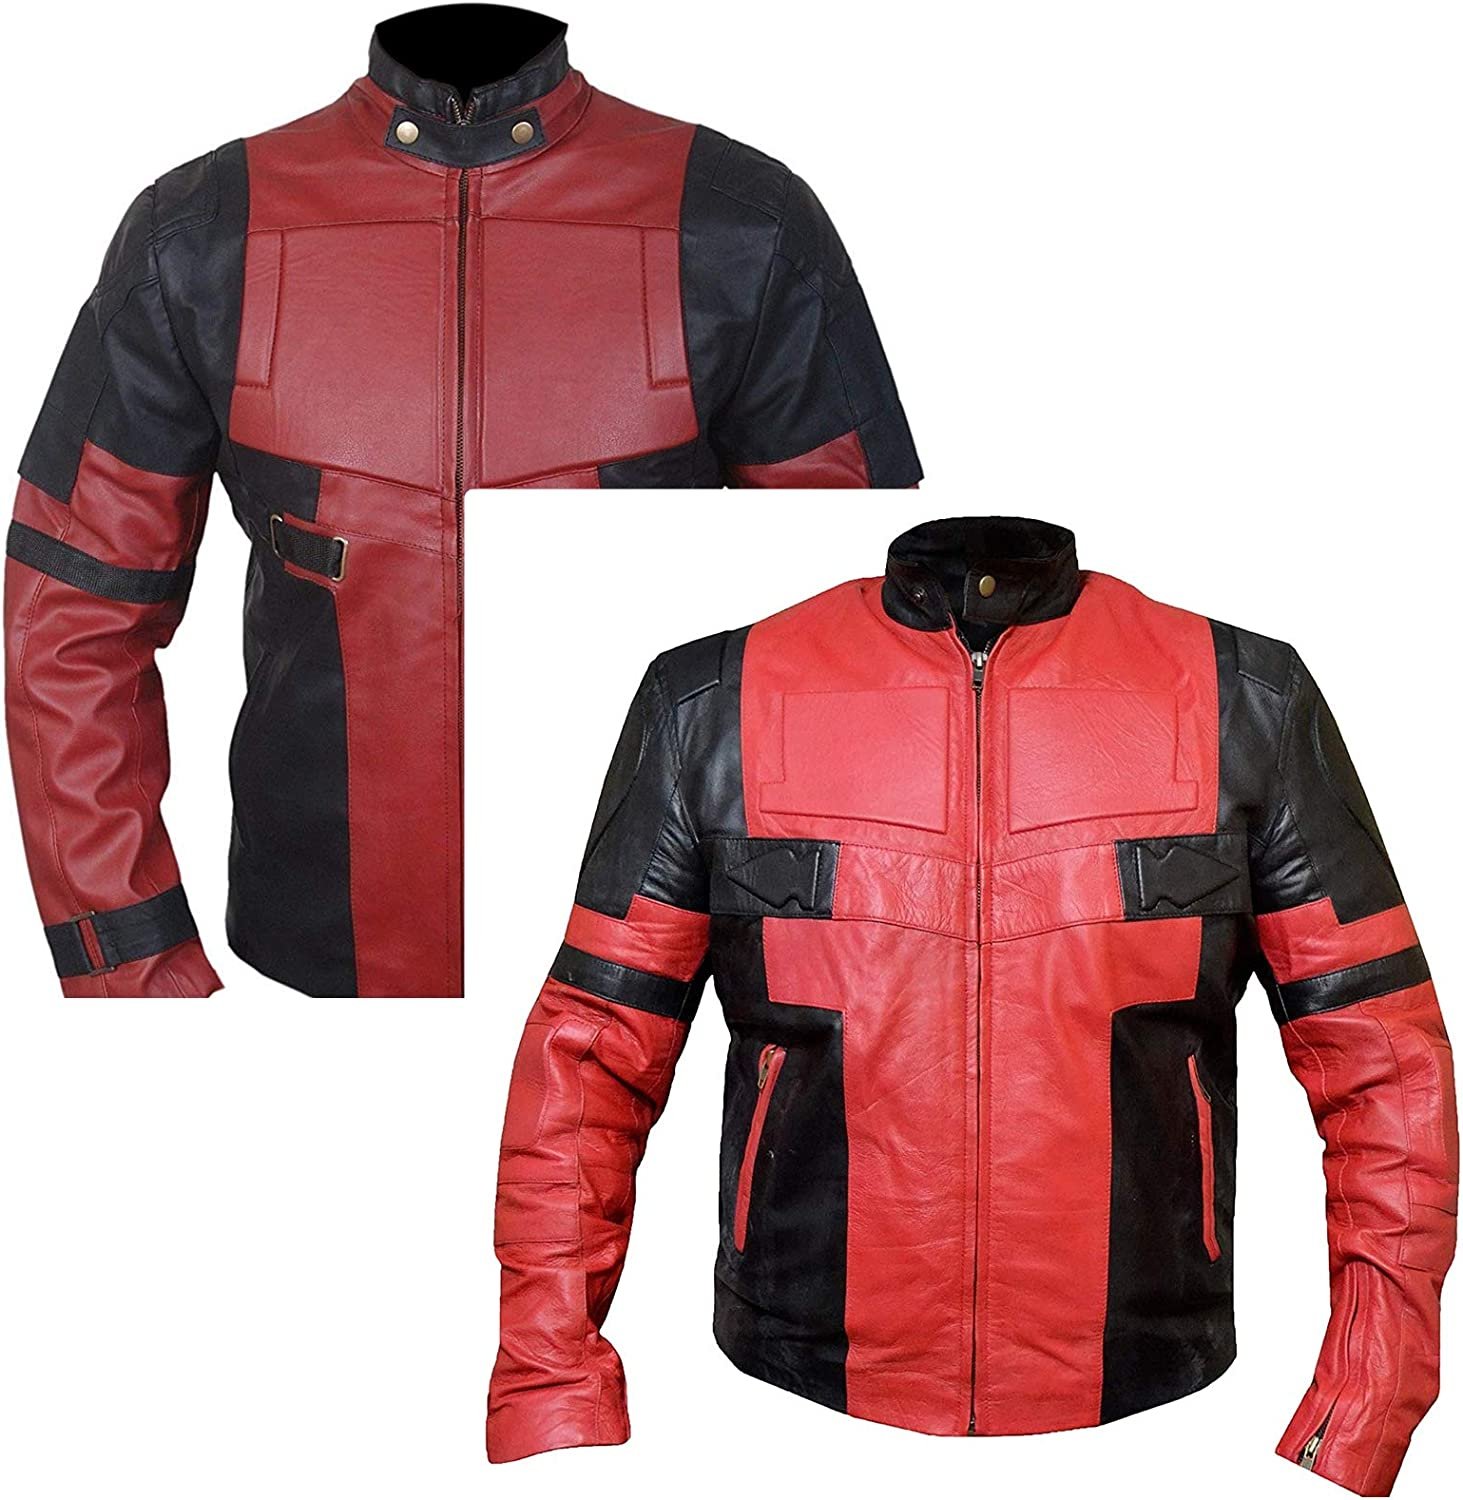 Western Fashions Men, Women Ryan Reynolds Deadpool Leather Red & Black Jacket